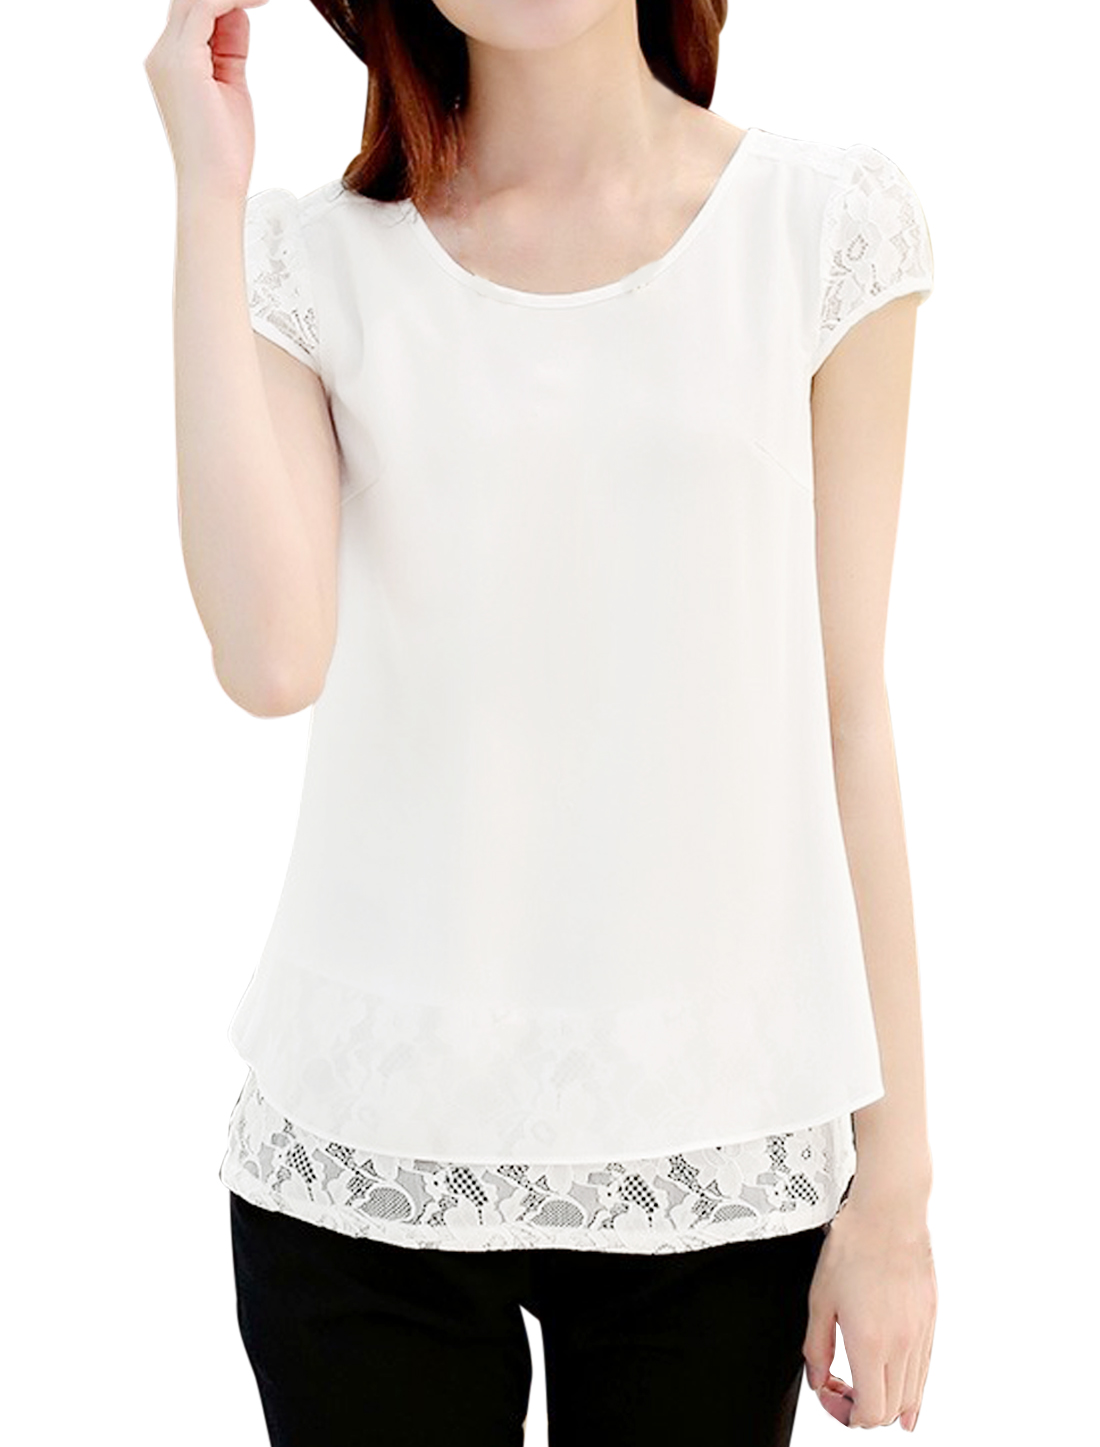 Lady Layered Shirts Split Back Lace Panel Chiffon Blouse White L